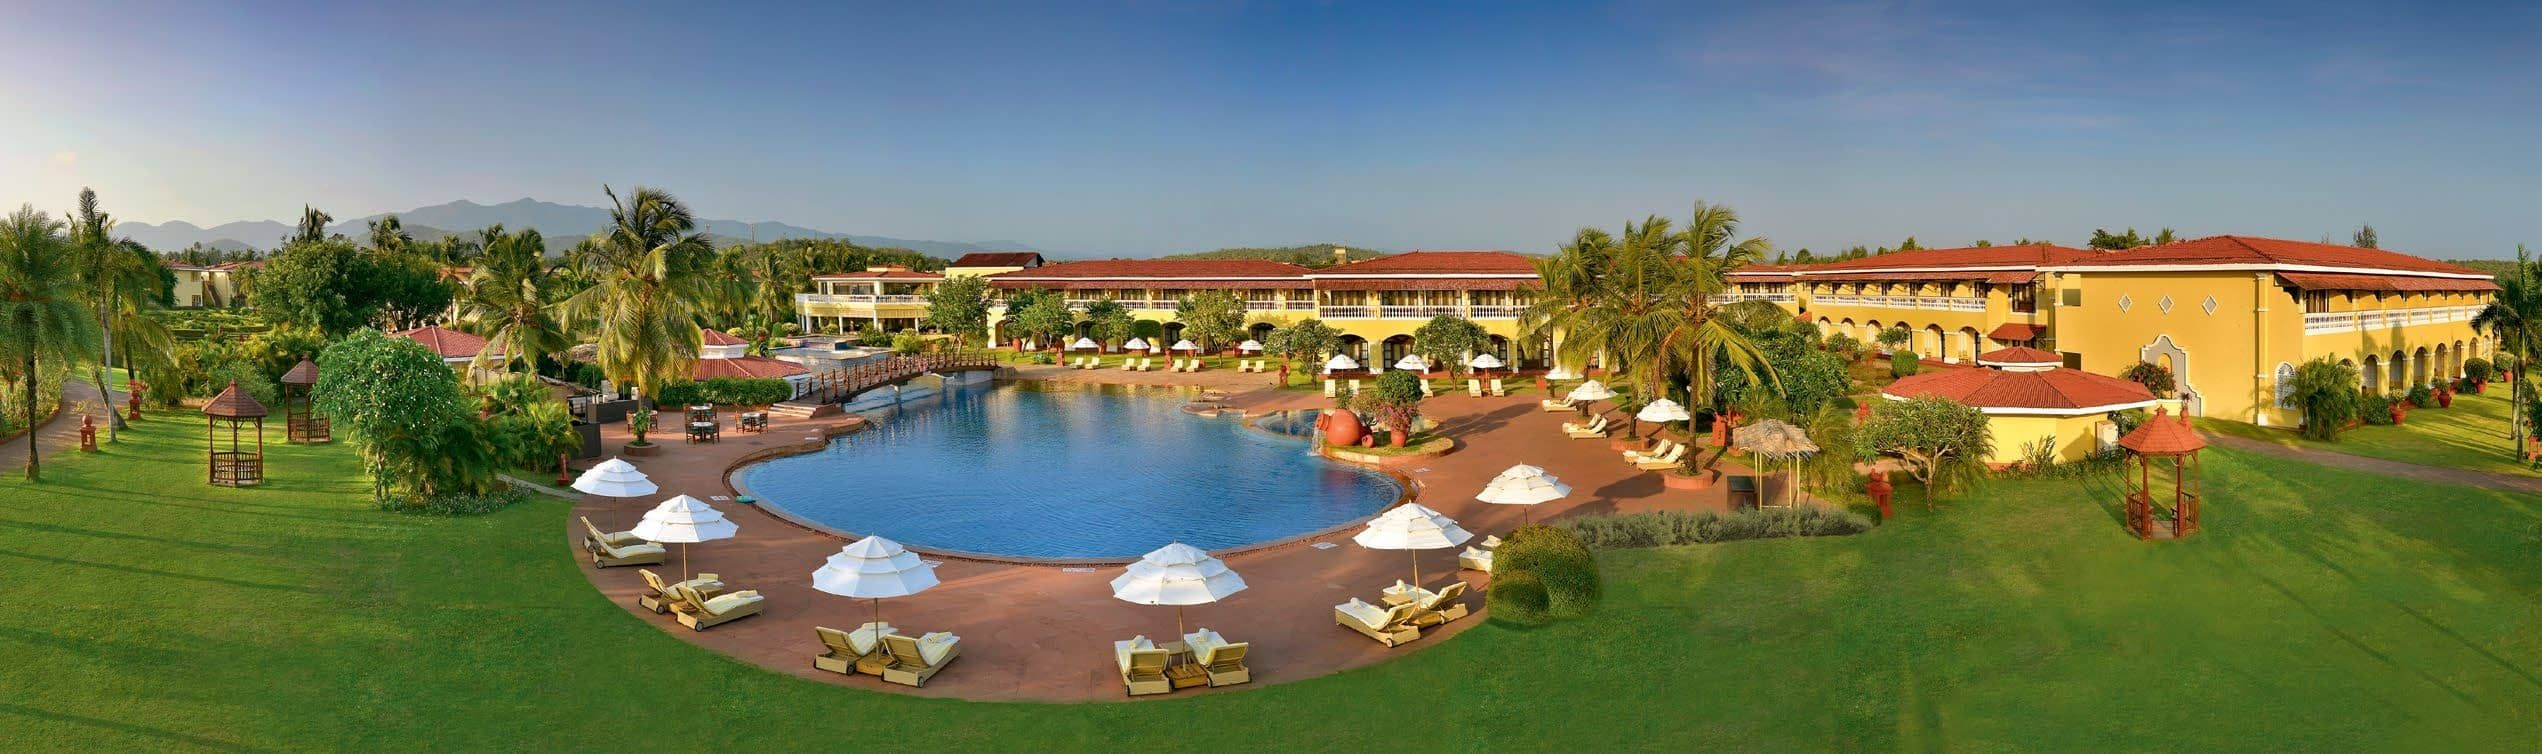 The LaLiT Golf Spa Resort